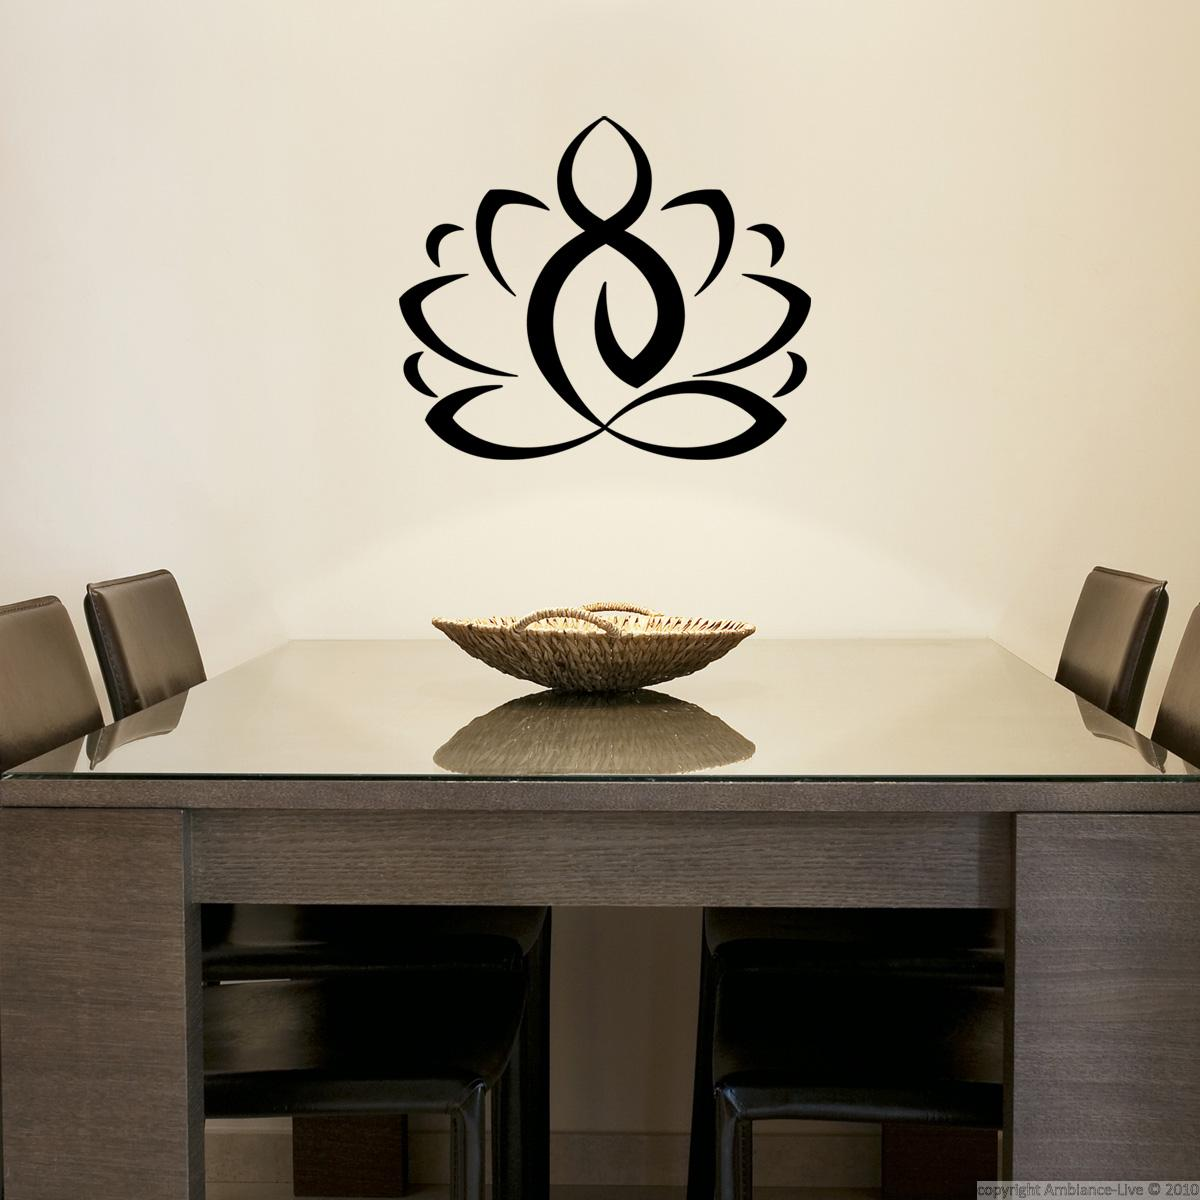 wall decals zen wall decal lotus ambiance. Black Bedroom Furniture Sets. Home Design Ideas